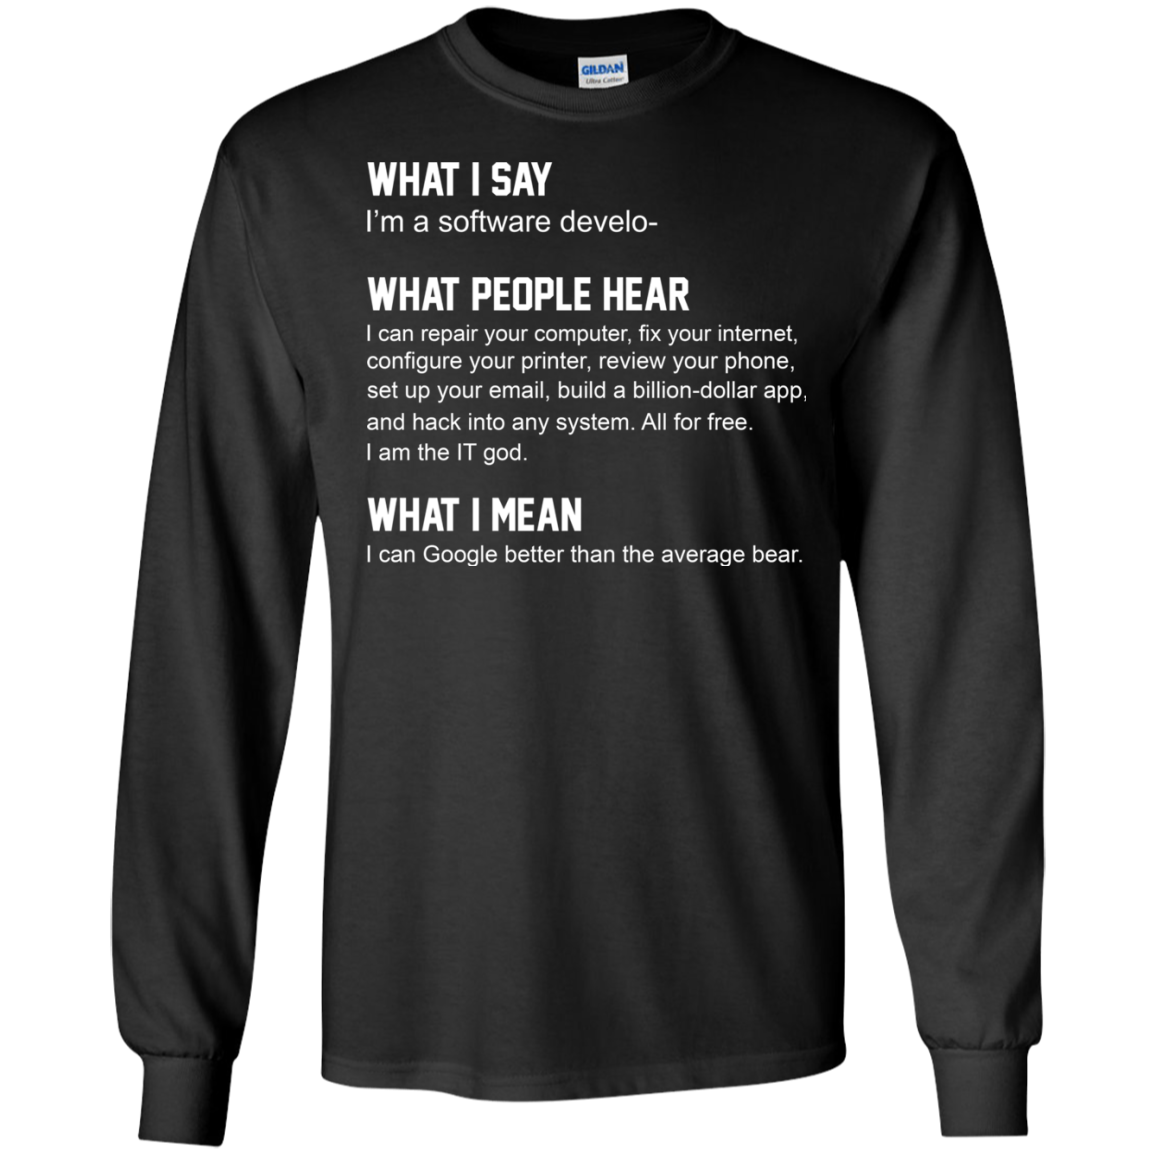 d598a429f Developer Funny shirts what people hear when i say i'm a software developer  tshirt